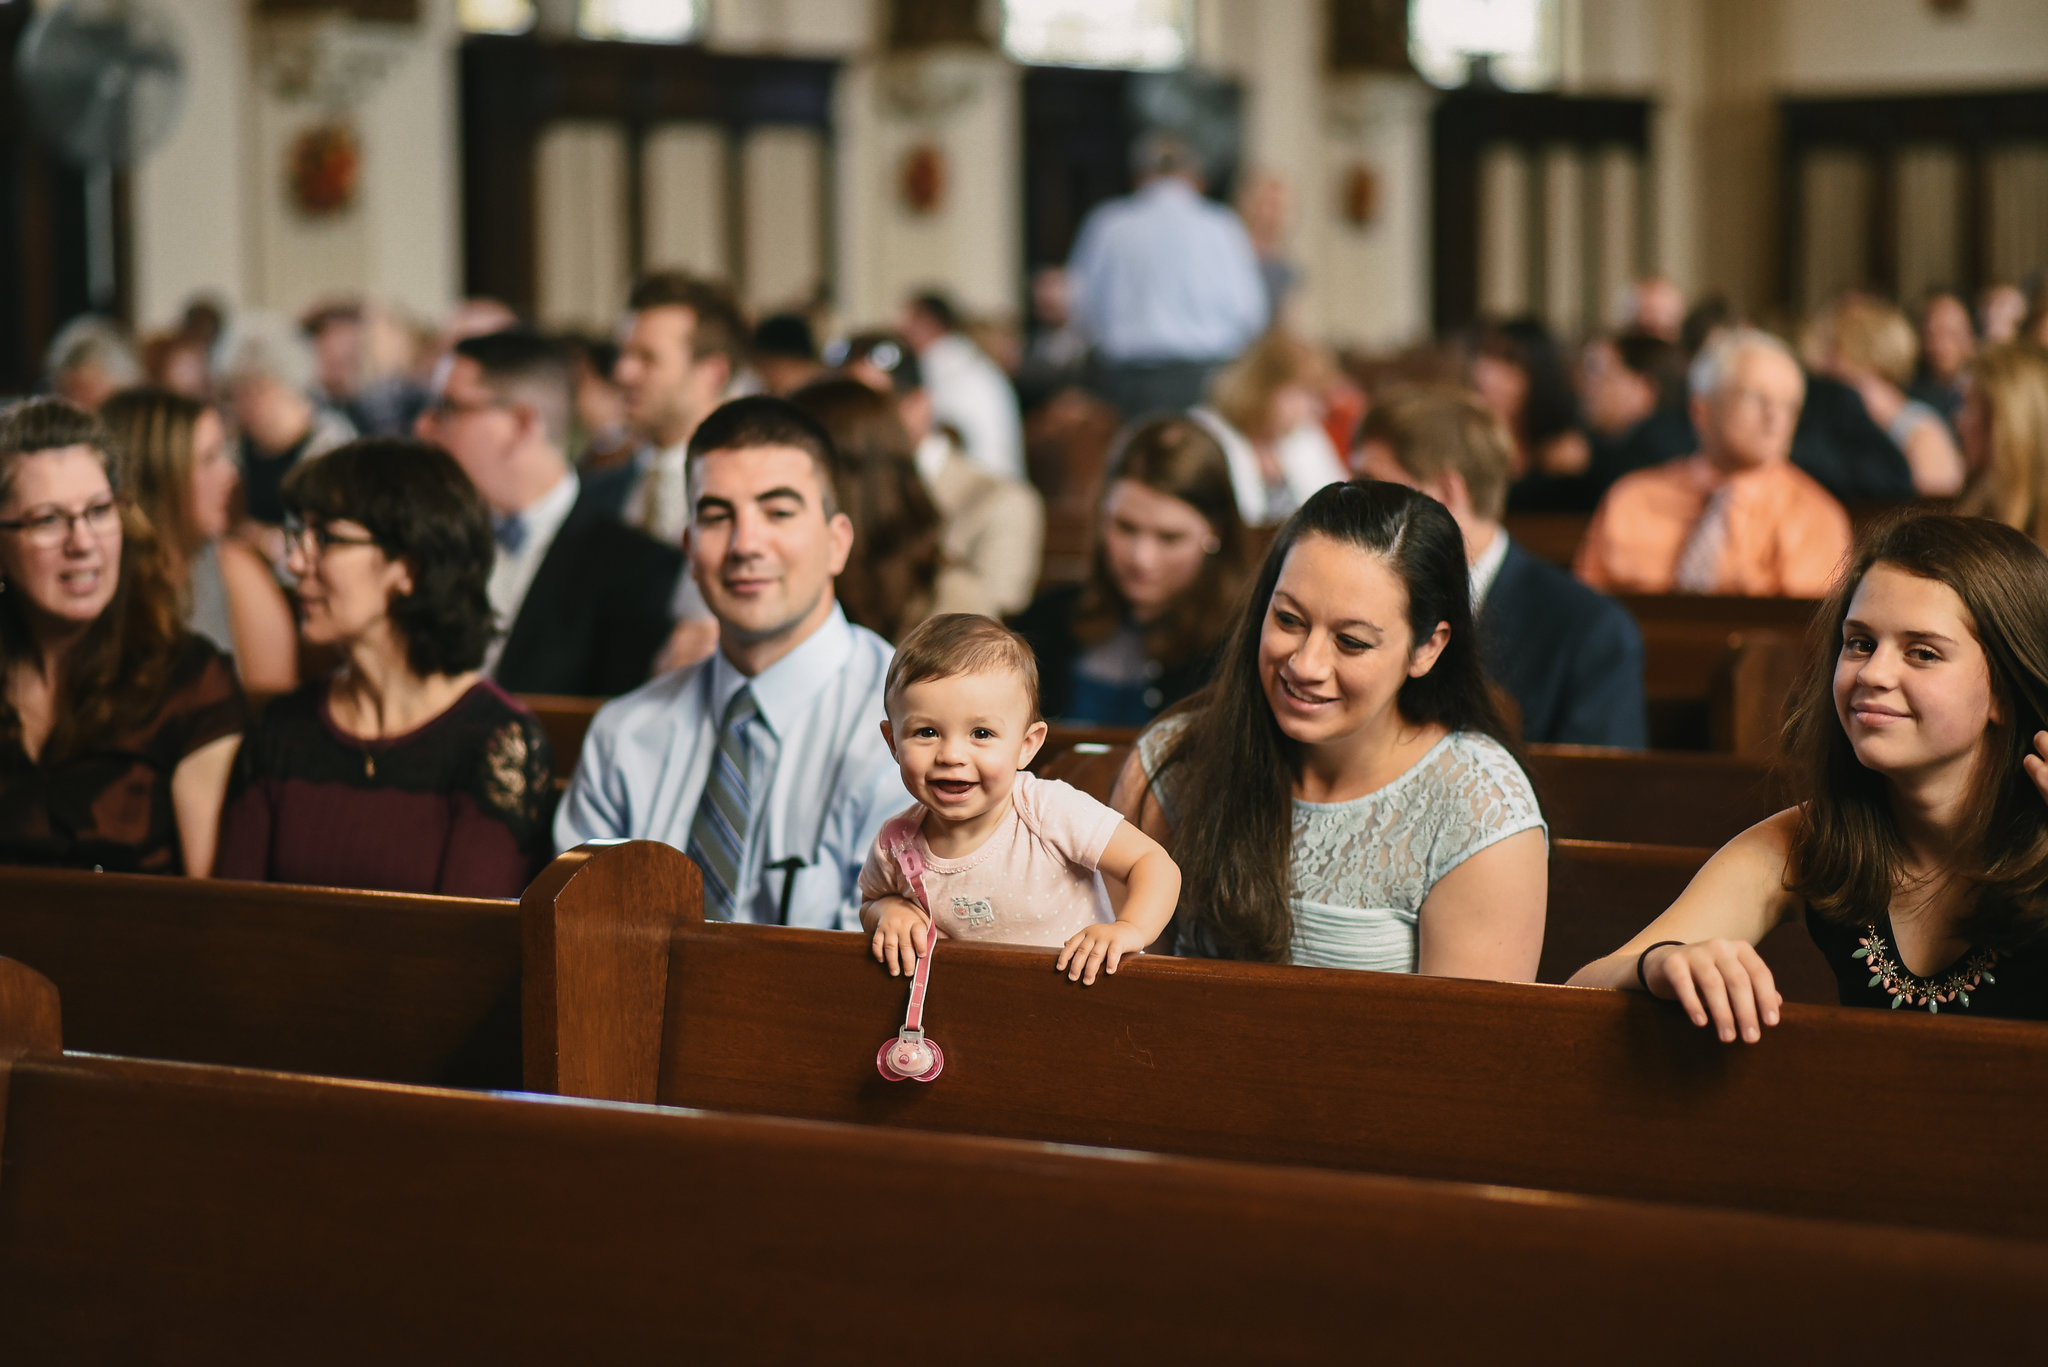 Baltimore, Canton, Church Wedding, Modern, Outdoors, Maryland Wedding Photographer, Romantic, Classic, St. Casimir Church, Guests being seated for ceremony, Wedding Guest with Baby